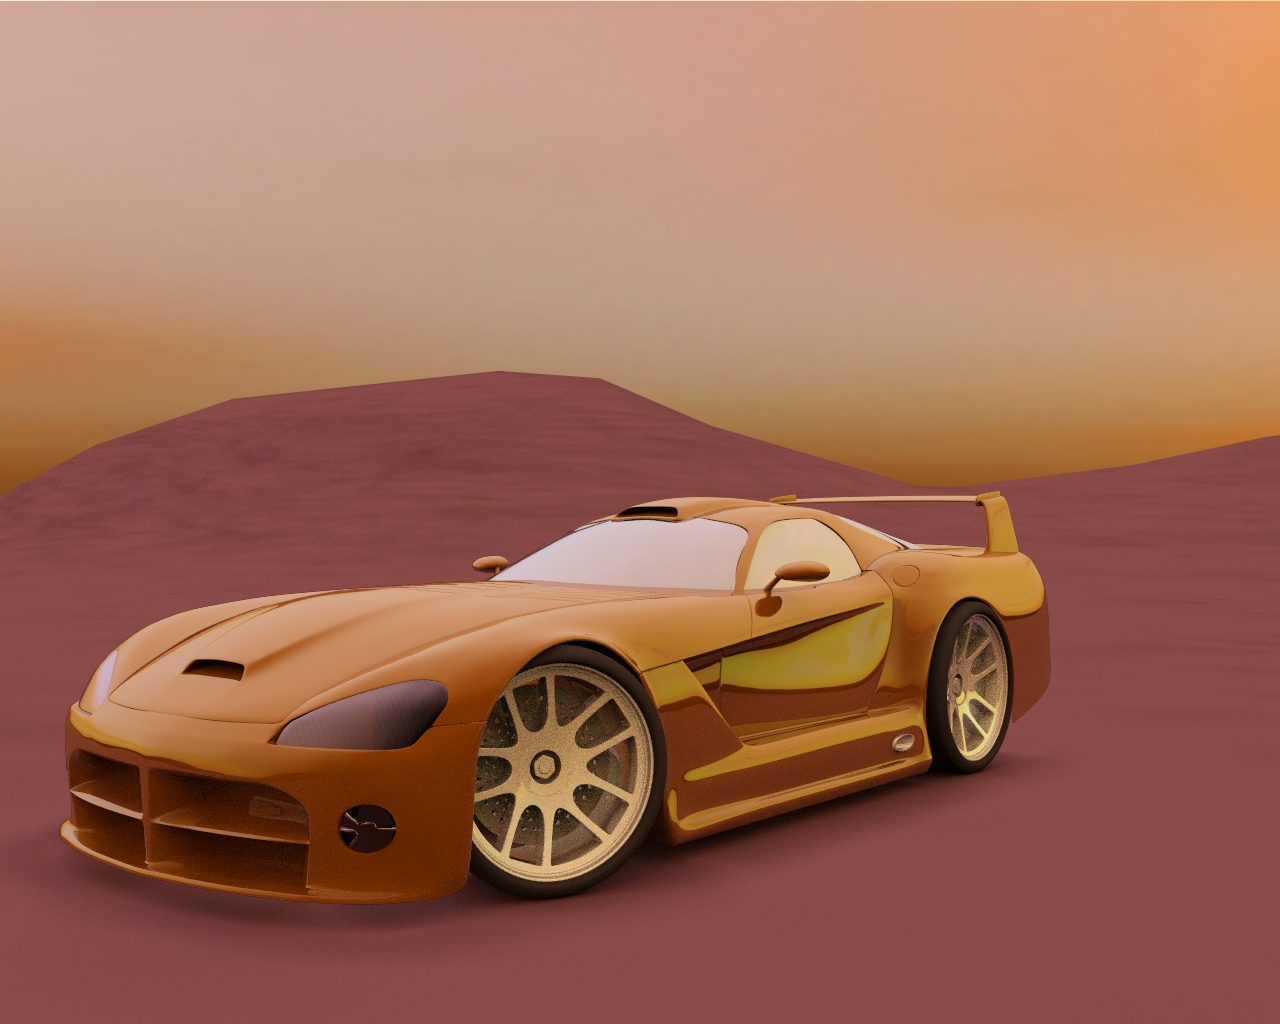 http://beausoleil.arnaud.free.fr/dynamique/modules/icontent/inPages/viper_evolution/original/screen_dodge_viper14.jpg